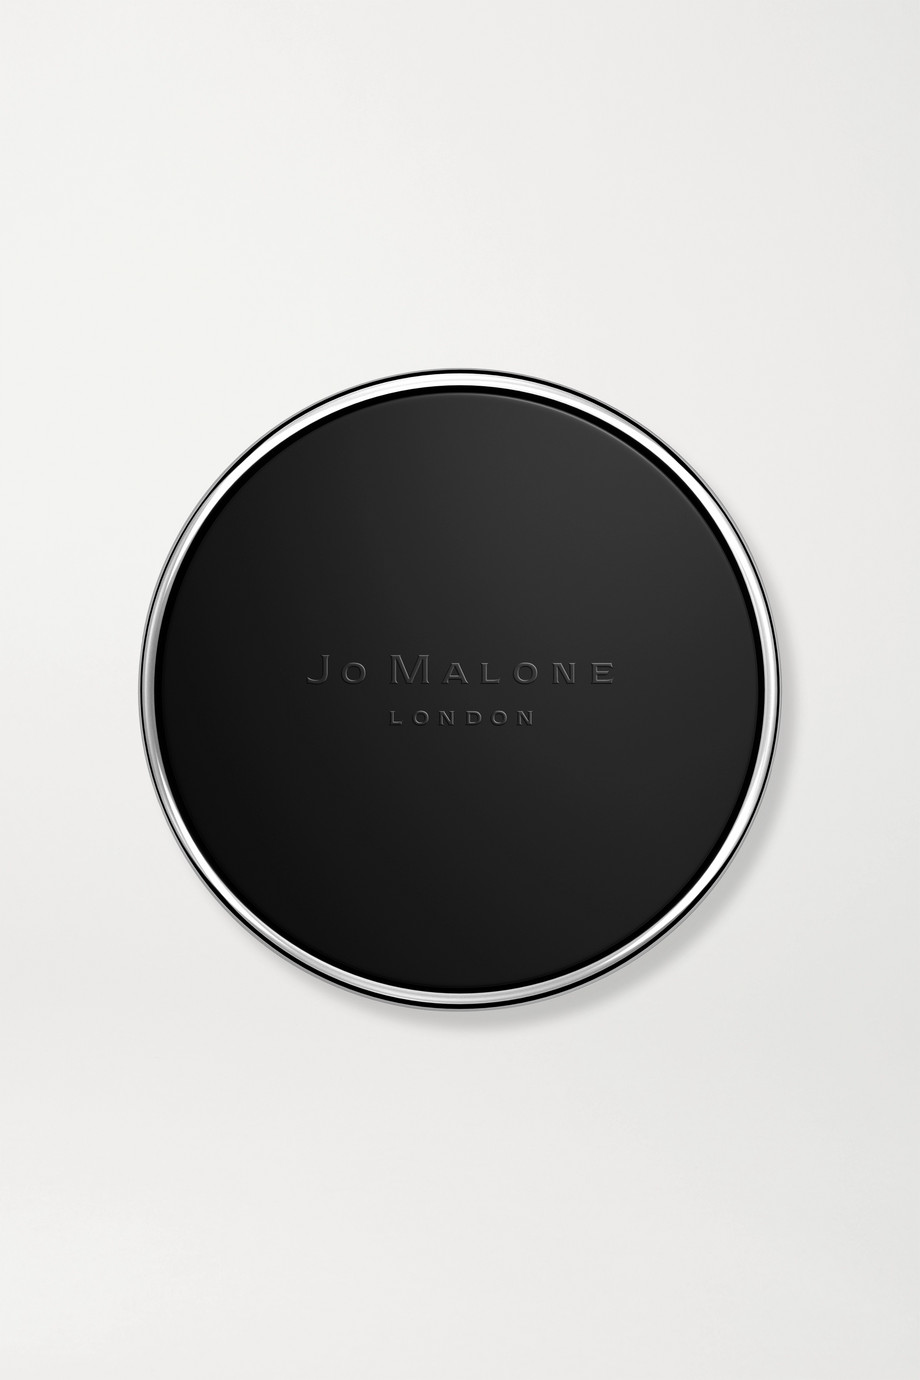 Jo Malone London Scent To Go - English Pear & Freesia